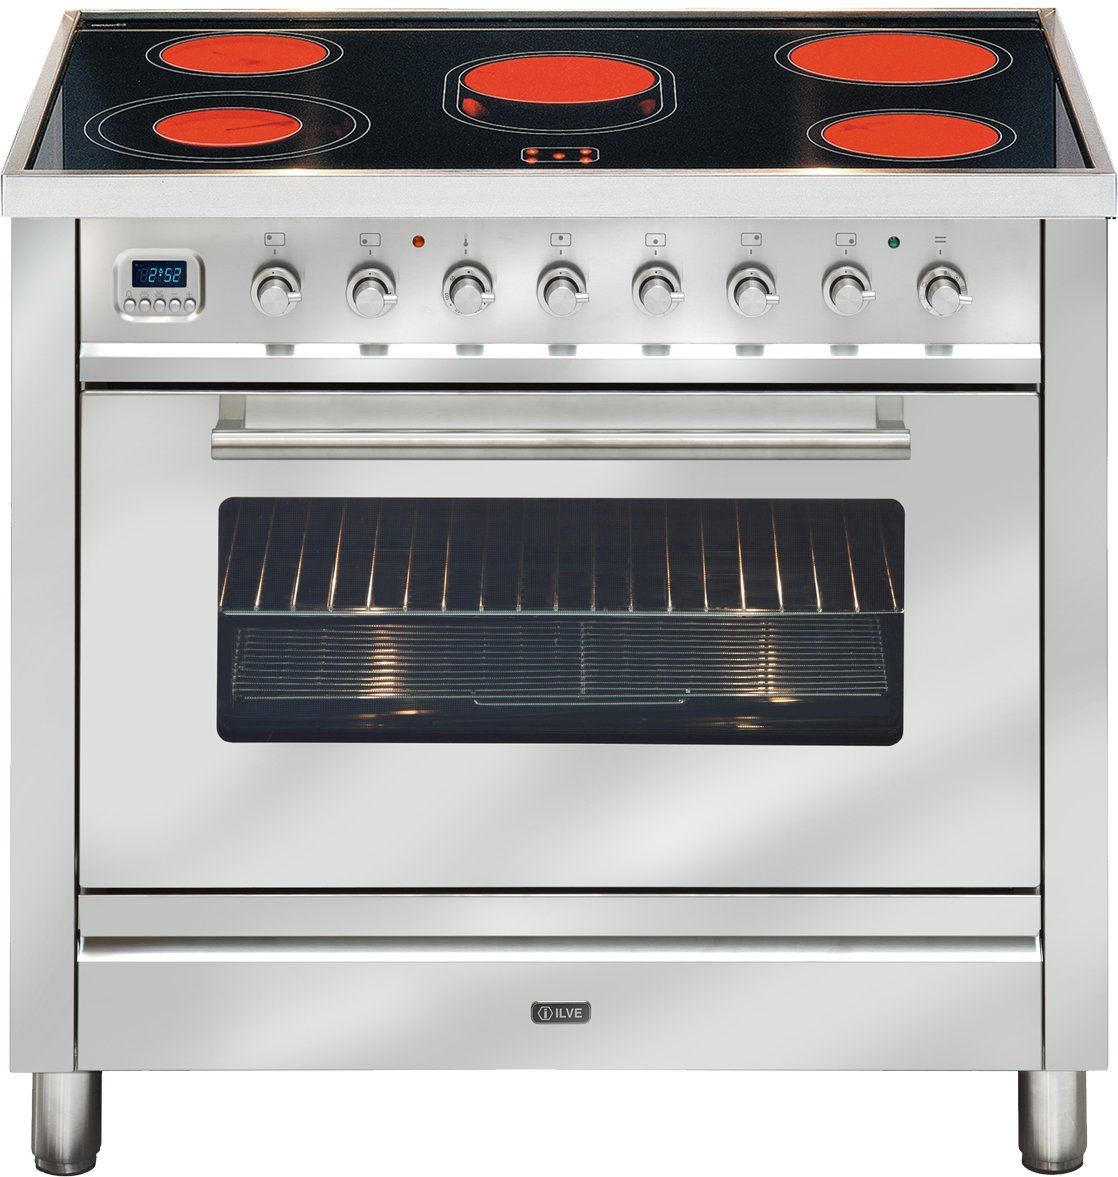 900mm Freestanding Electric Oven